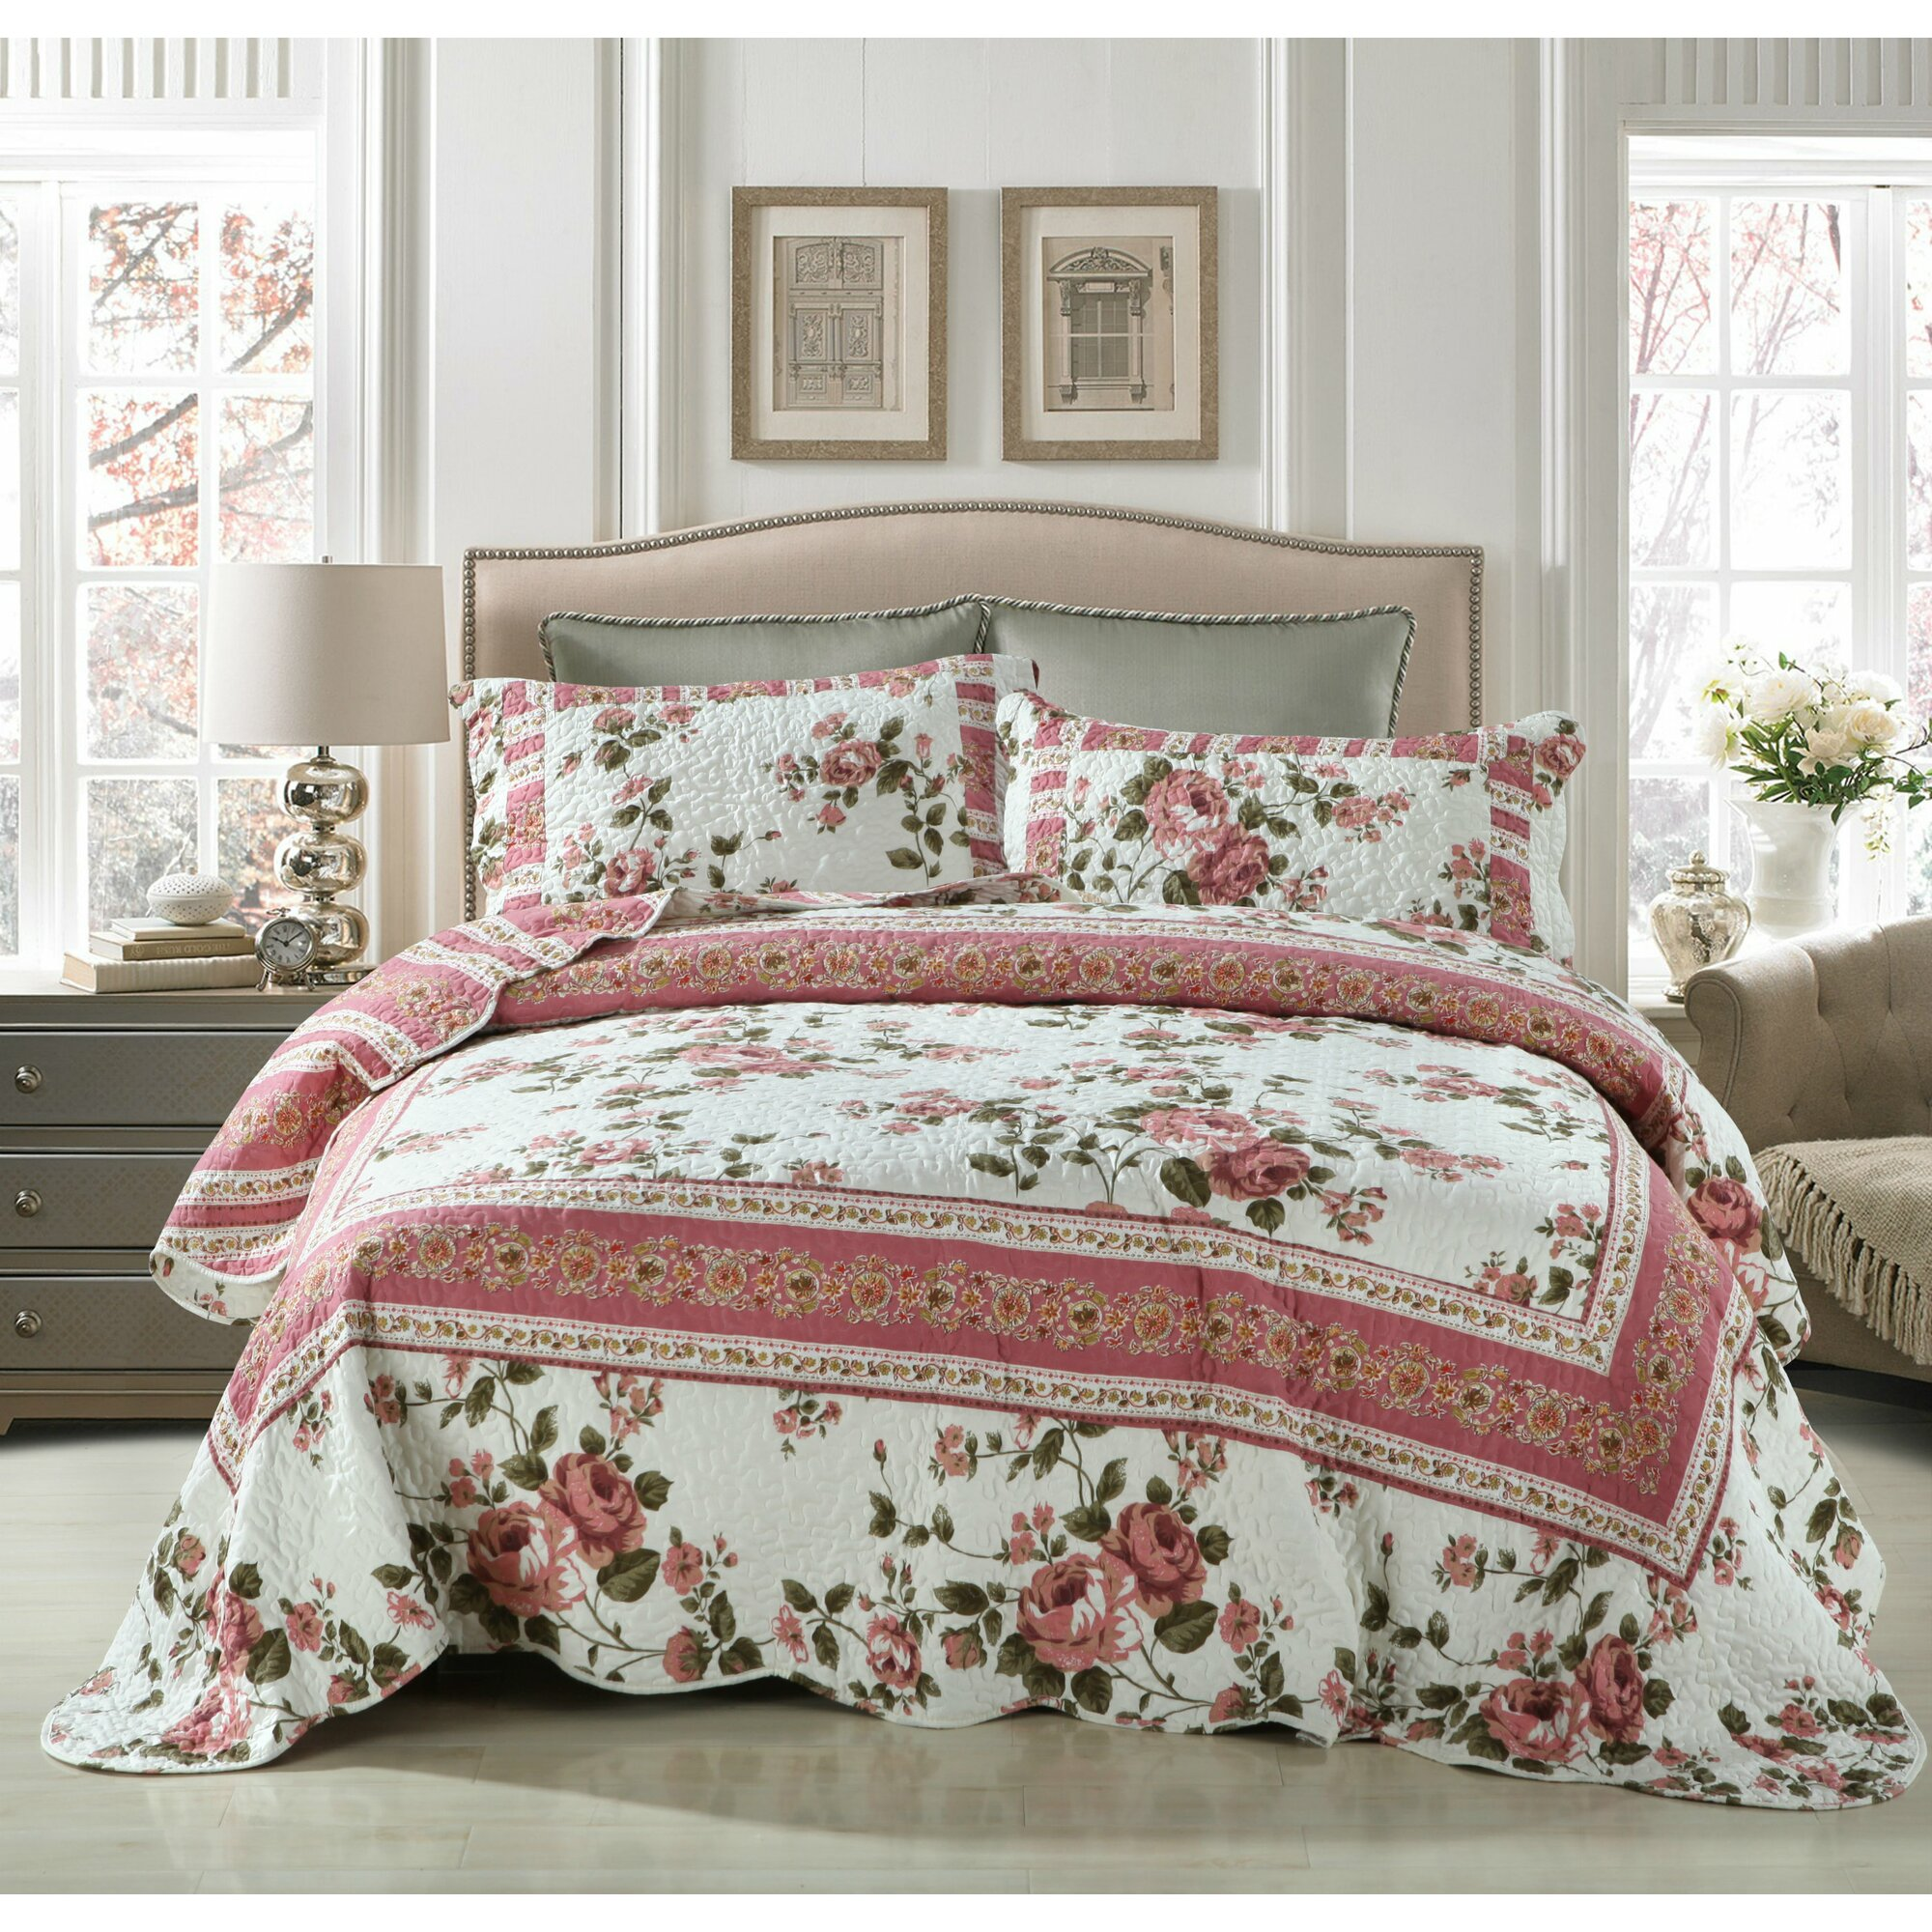 Bed sheet set with quilt - Bohemian Cottage Roses Reversible Patchwork Quilt Set